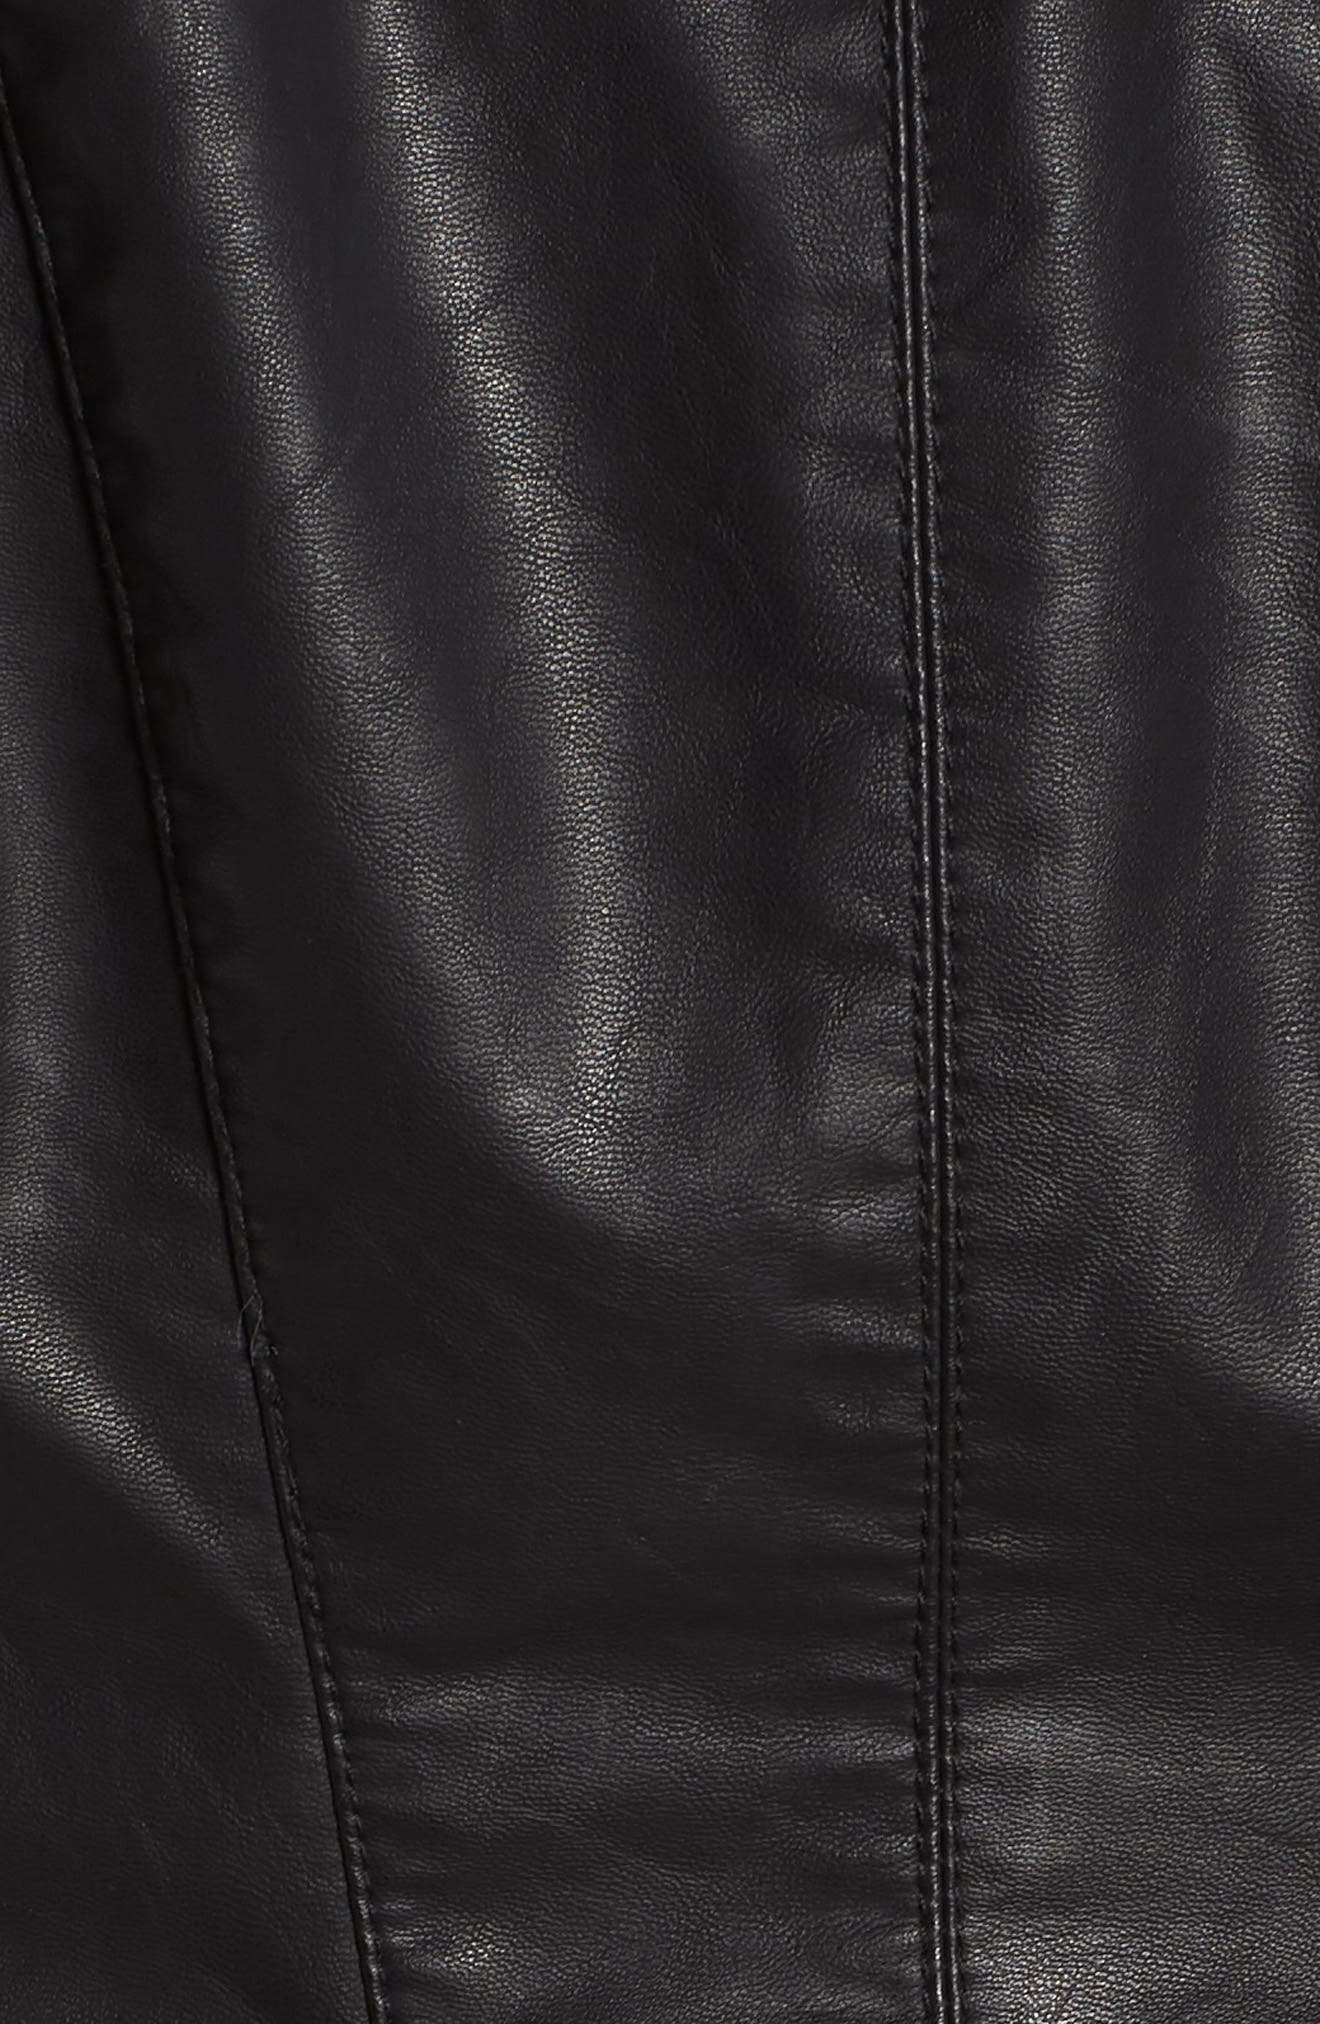 Faux Leather Moto Jacket,                             Alternate thumbnail 8, color,                             BLACK